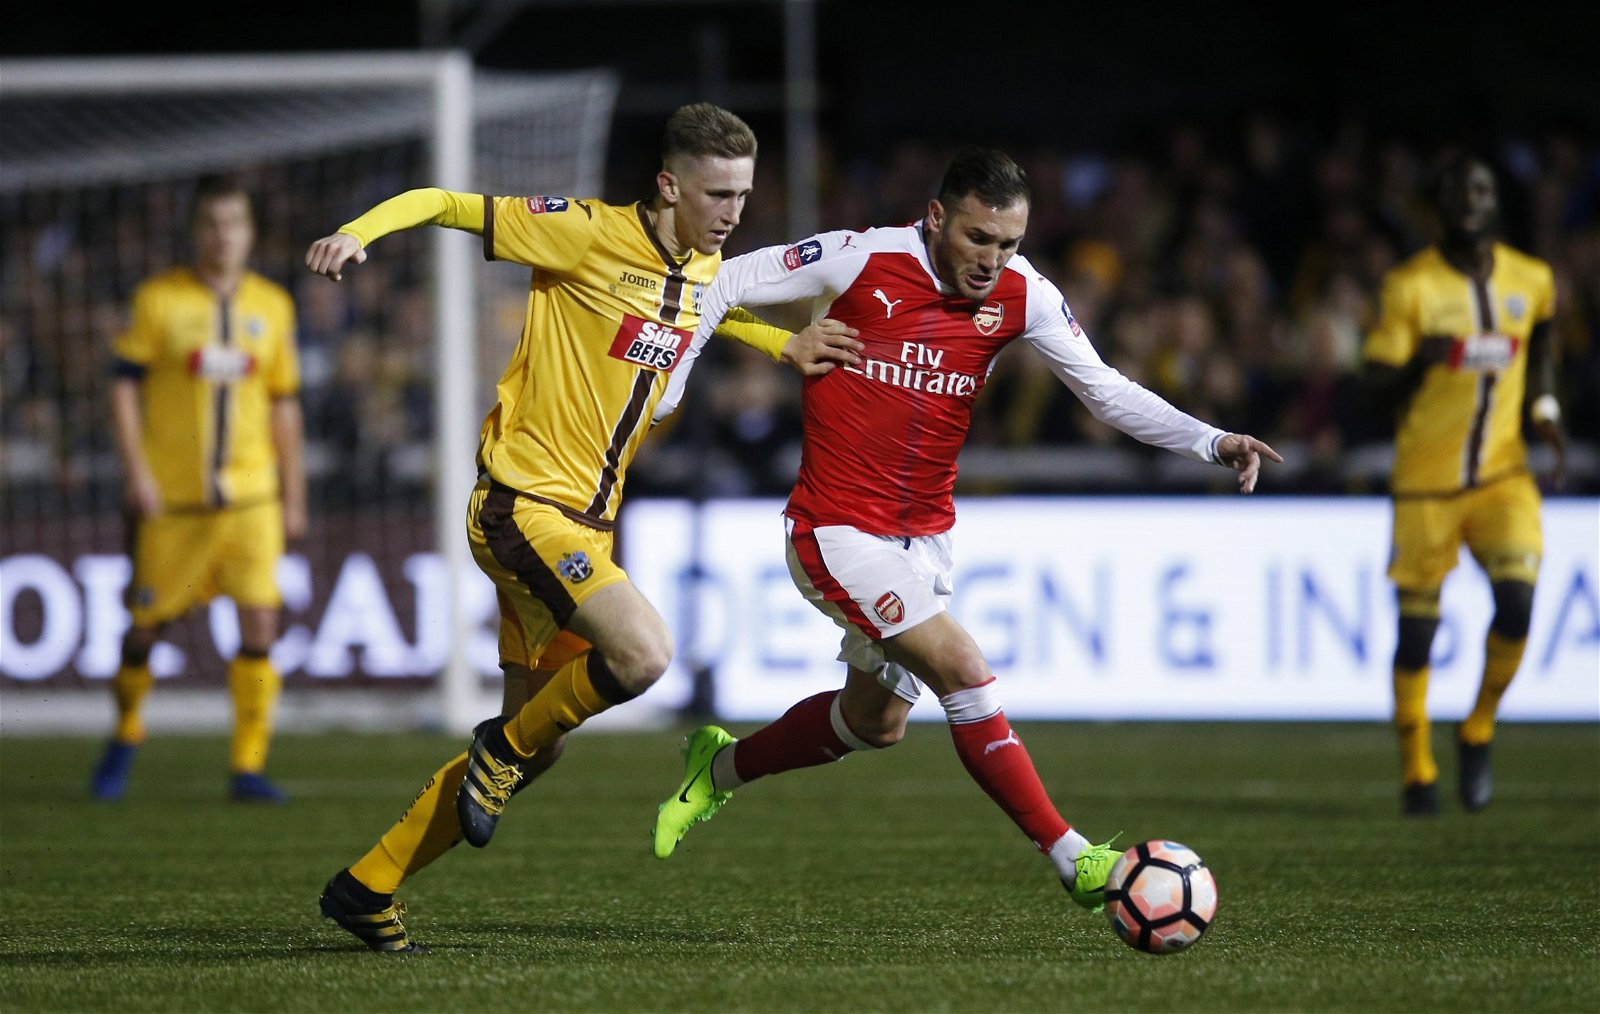 Why Newcastle should be targeting Arsenal's Lucas Perez this summer